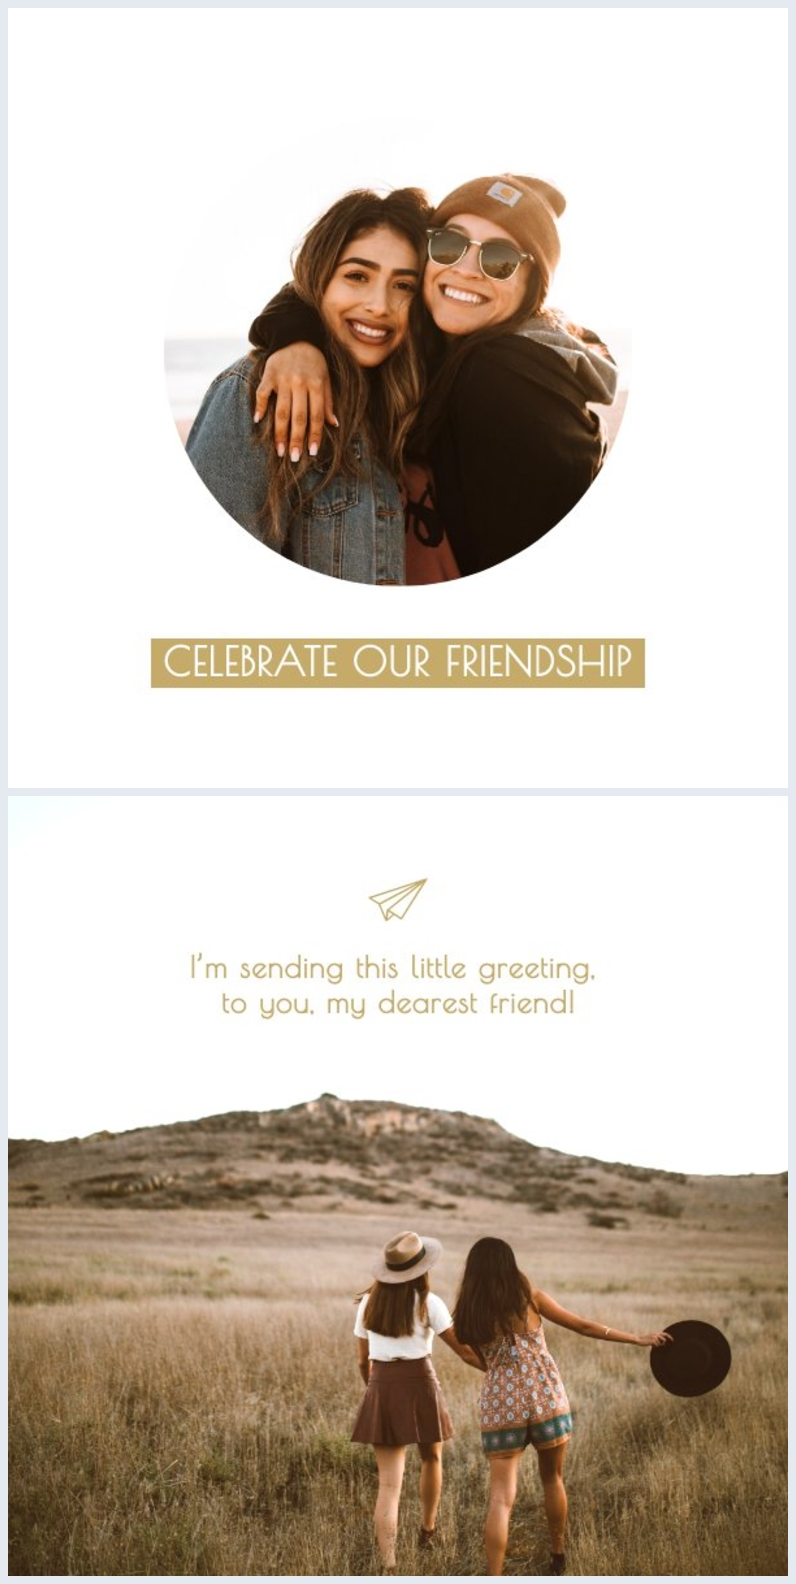 friendship card design